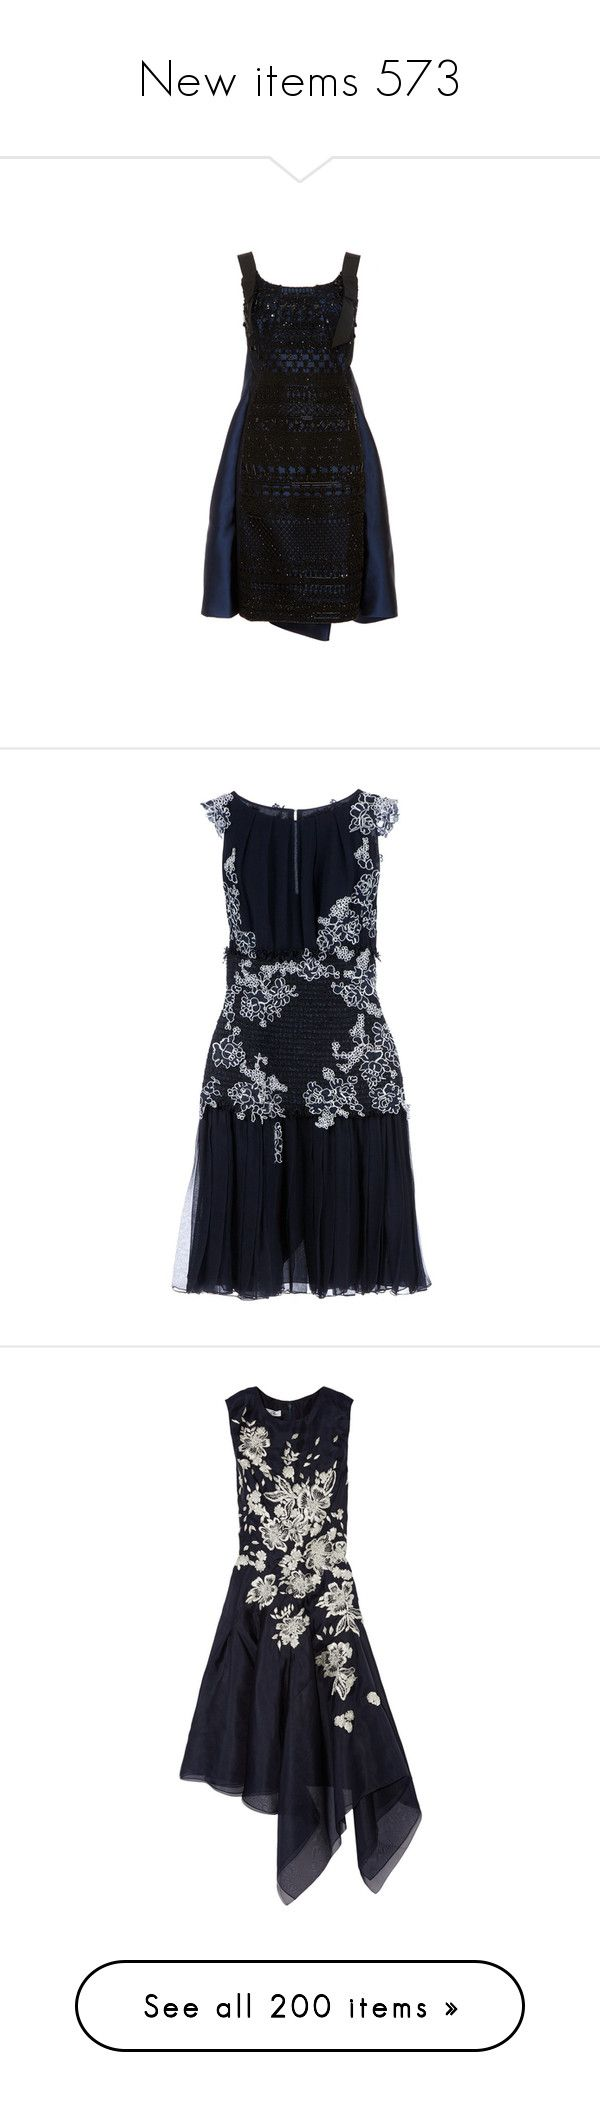 """""""New items 573"""" by cavallaro ❤ liked on Polyvore featuring dresses, scoop neckline dress, no sleeve dress, oscar de la renta dresses, ruched sleeveless dress, scoop-neck dresses, oscar de la renta, blue, blue dress and embroidery dresses"""